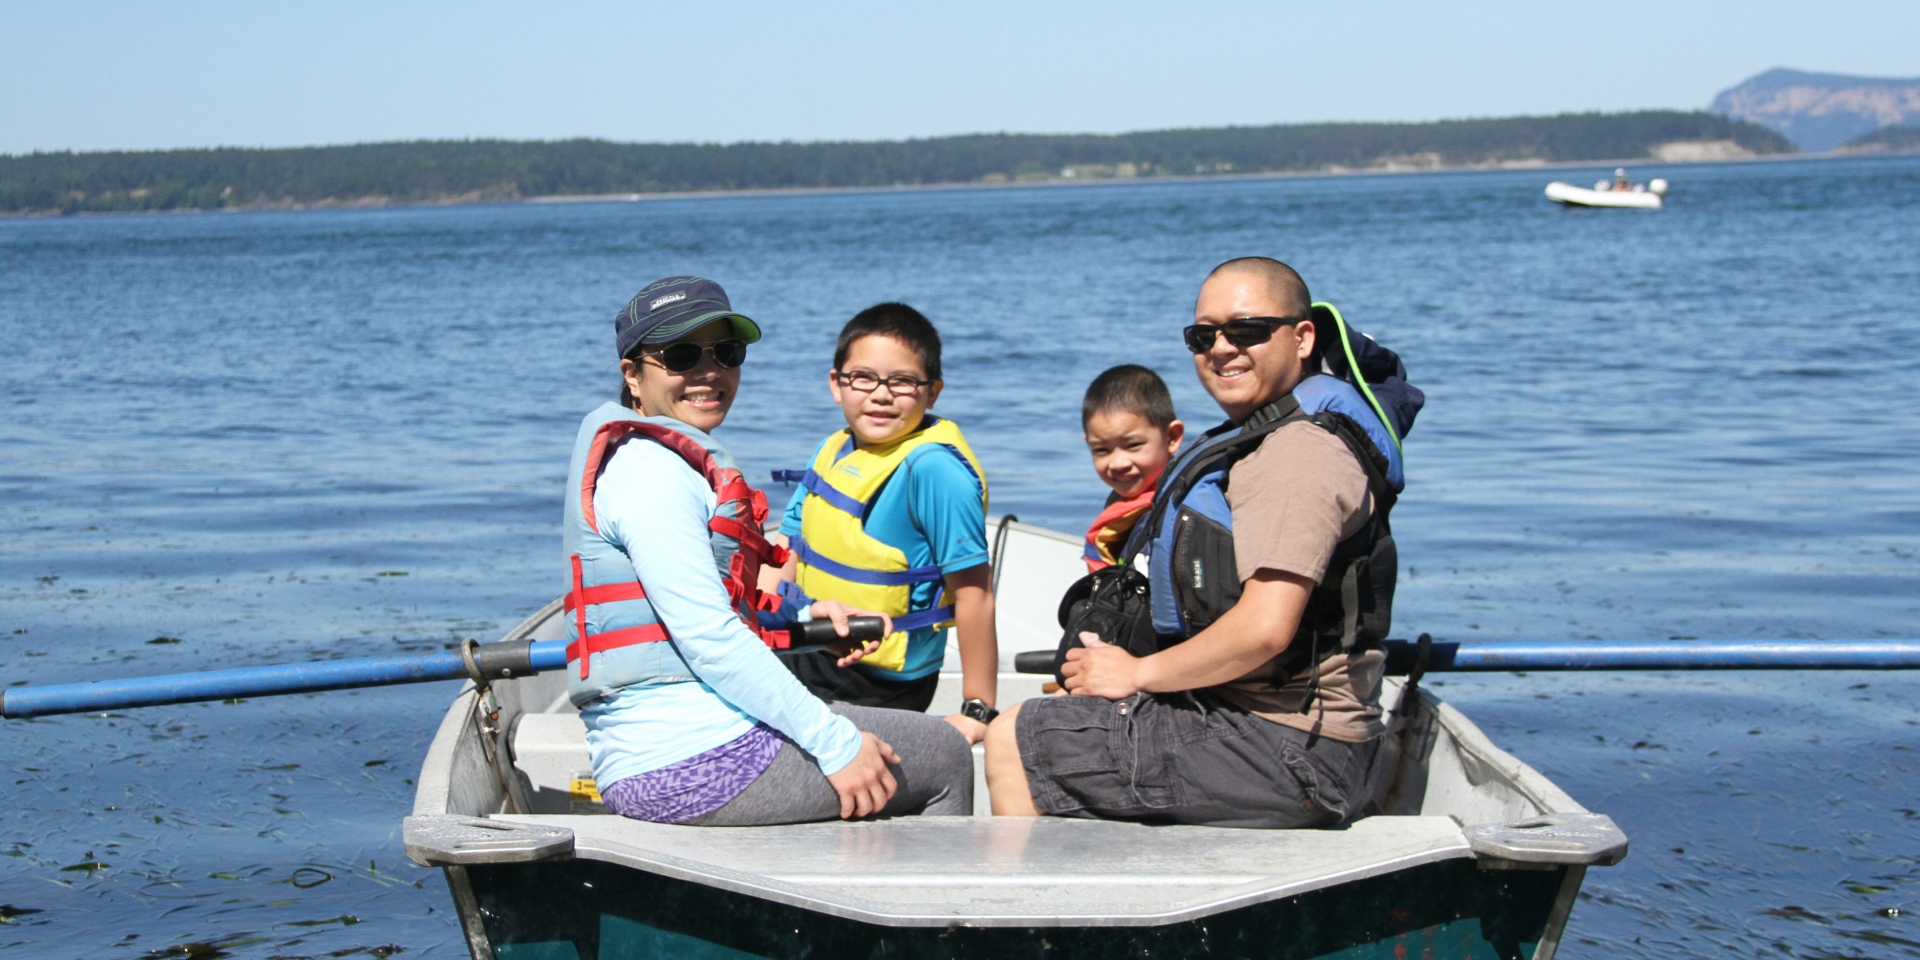 Family on boat at water's edge